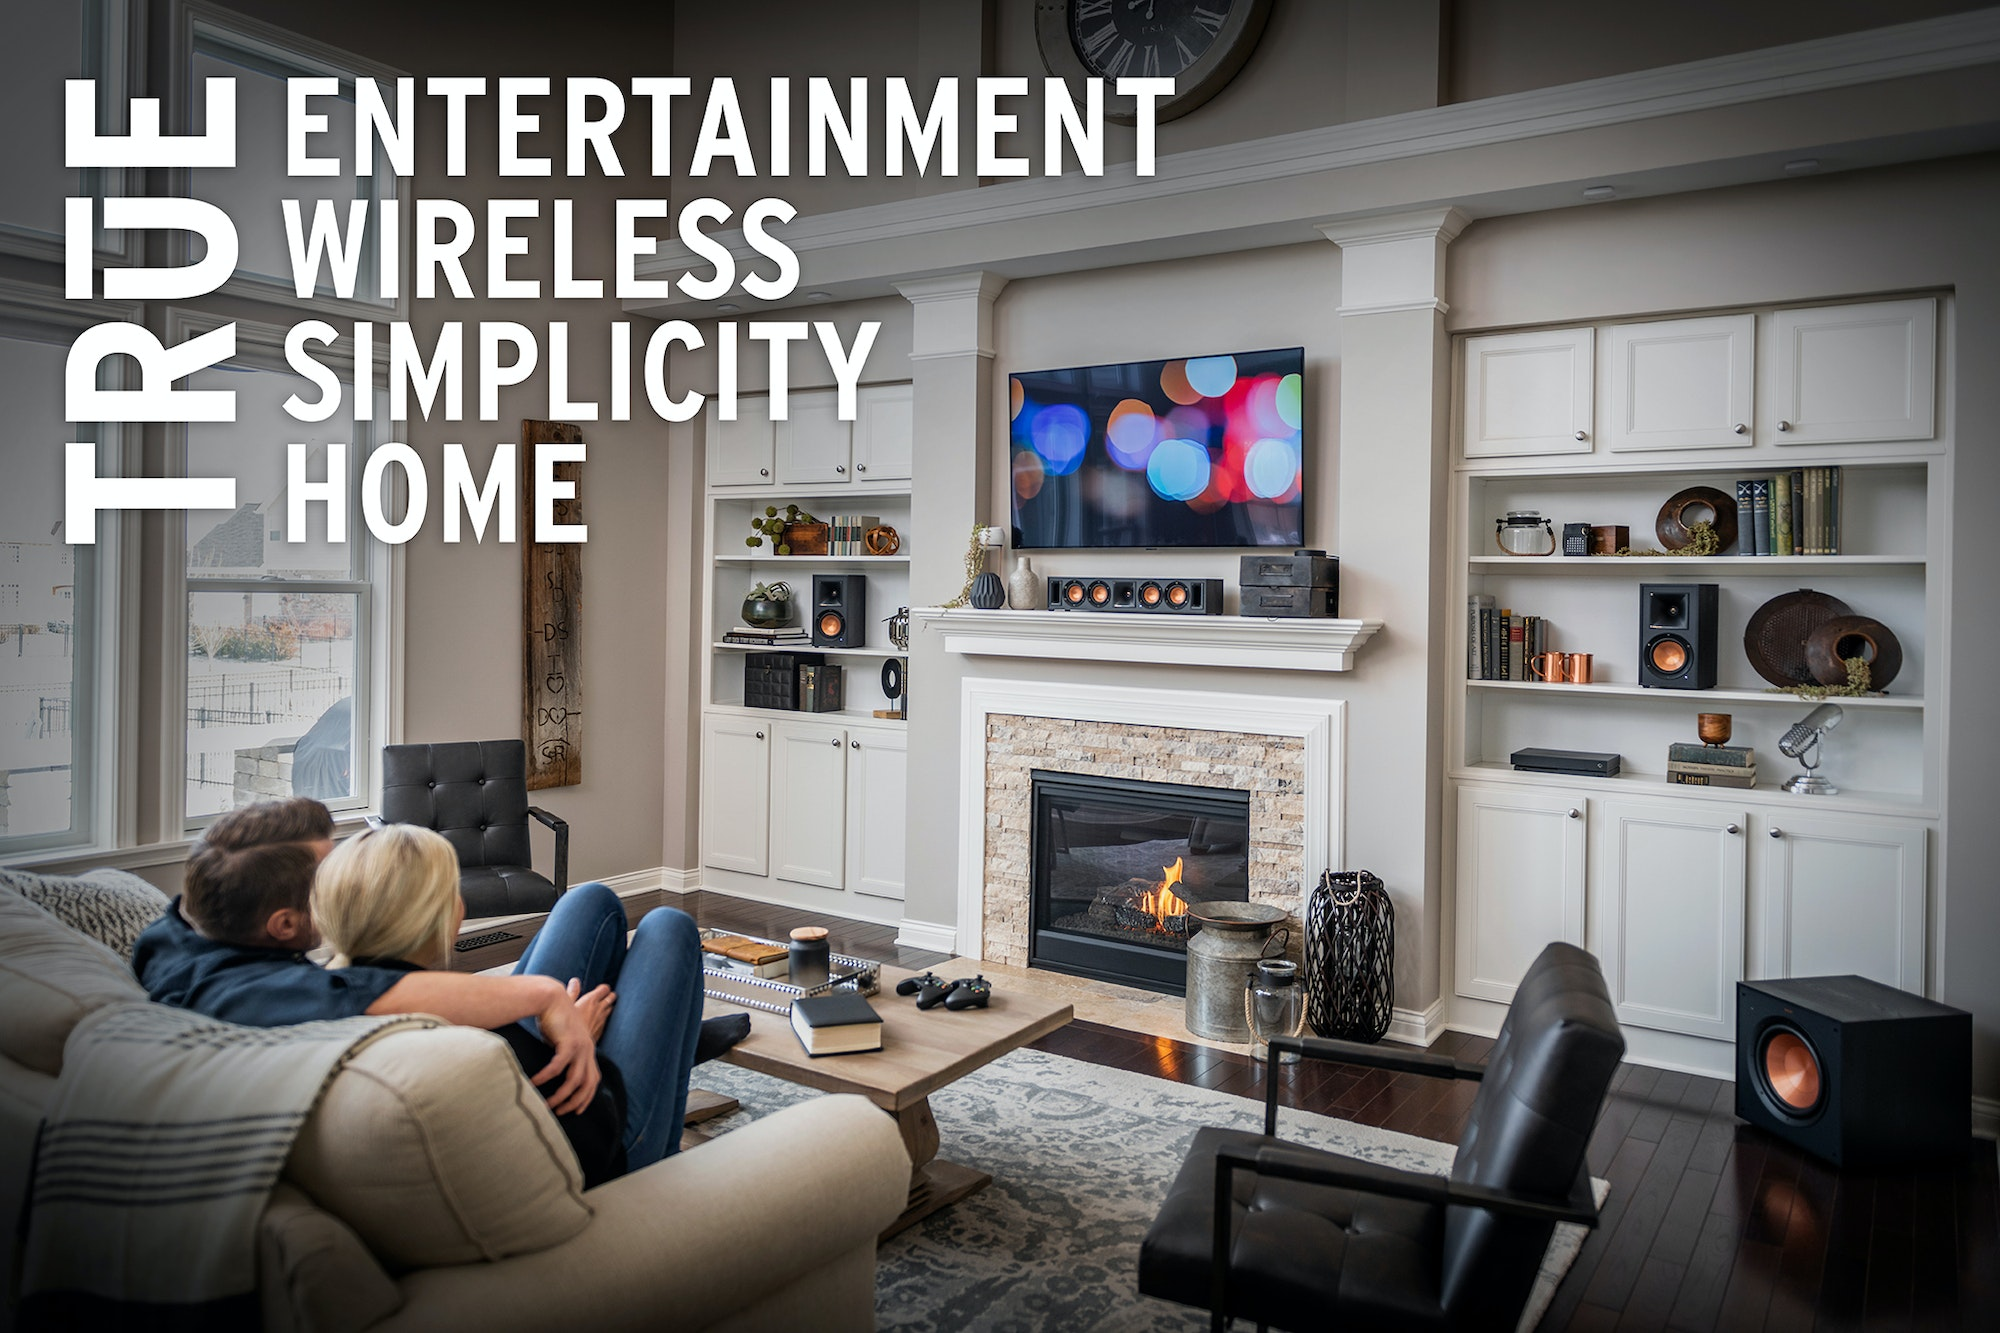 Klipsch Reference Wireless home theater system in a living room